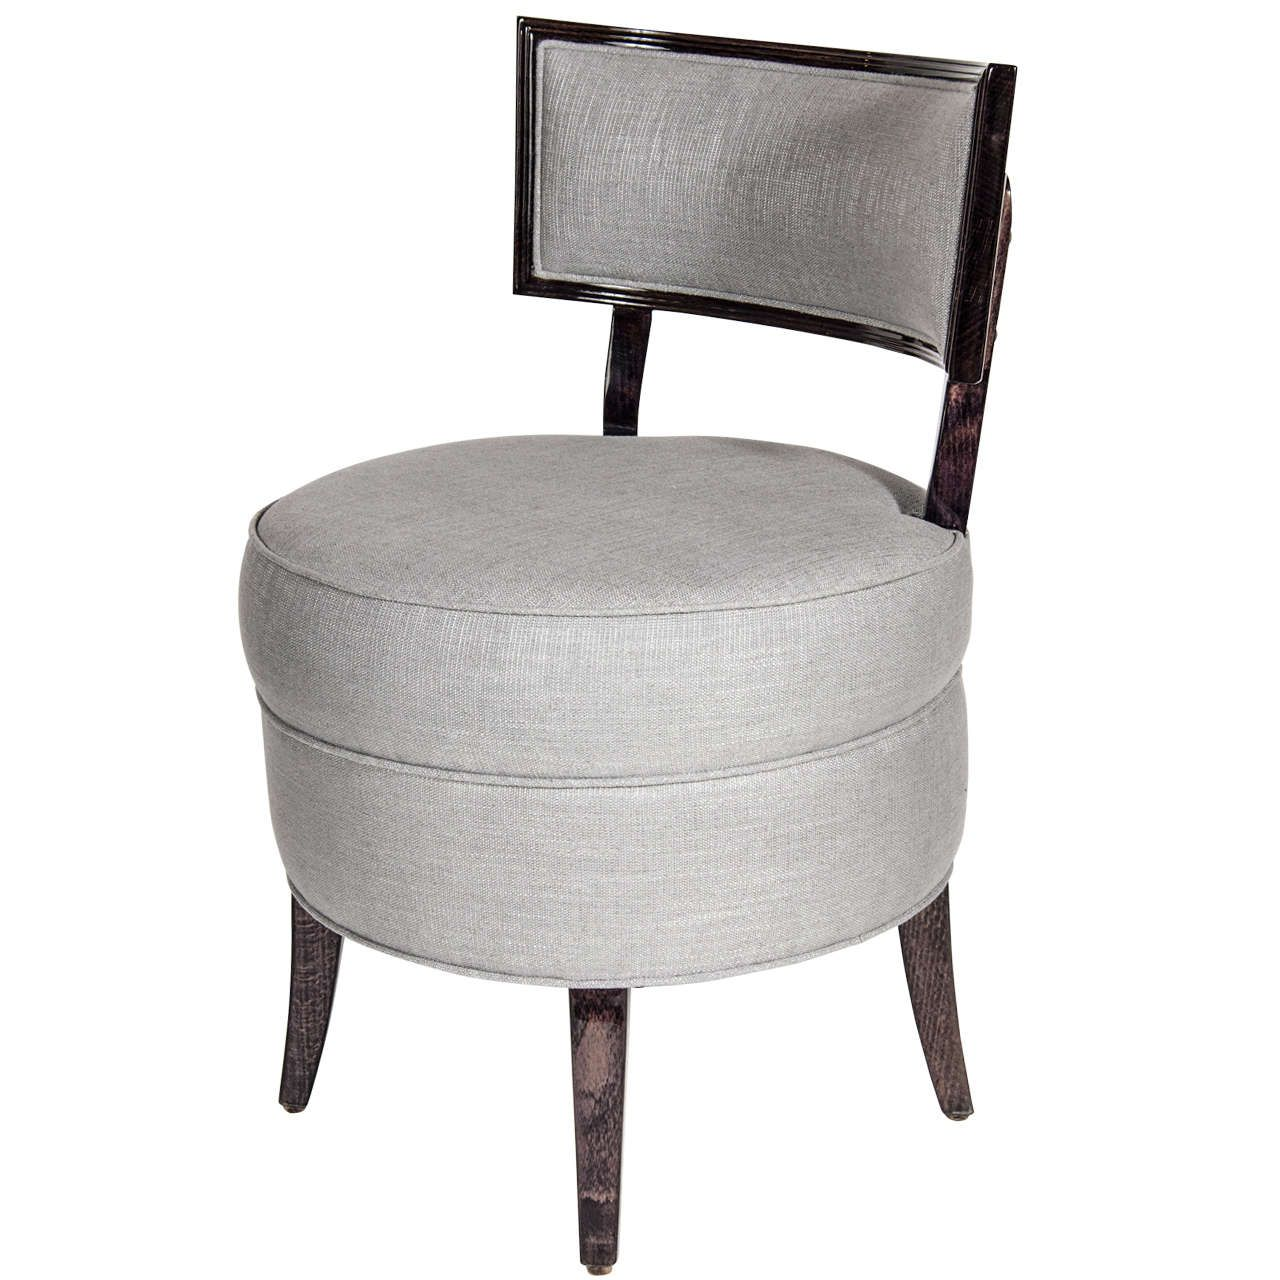 Stylish Vanity Stools and Chairs for Modern Bedroom Furniture ...